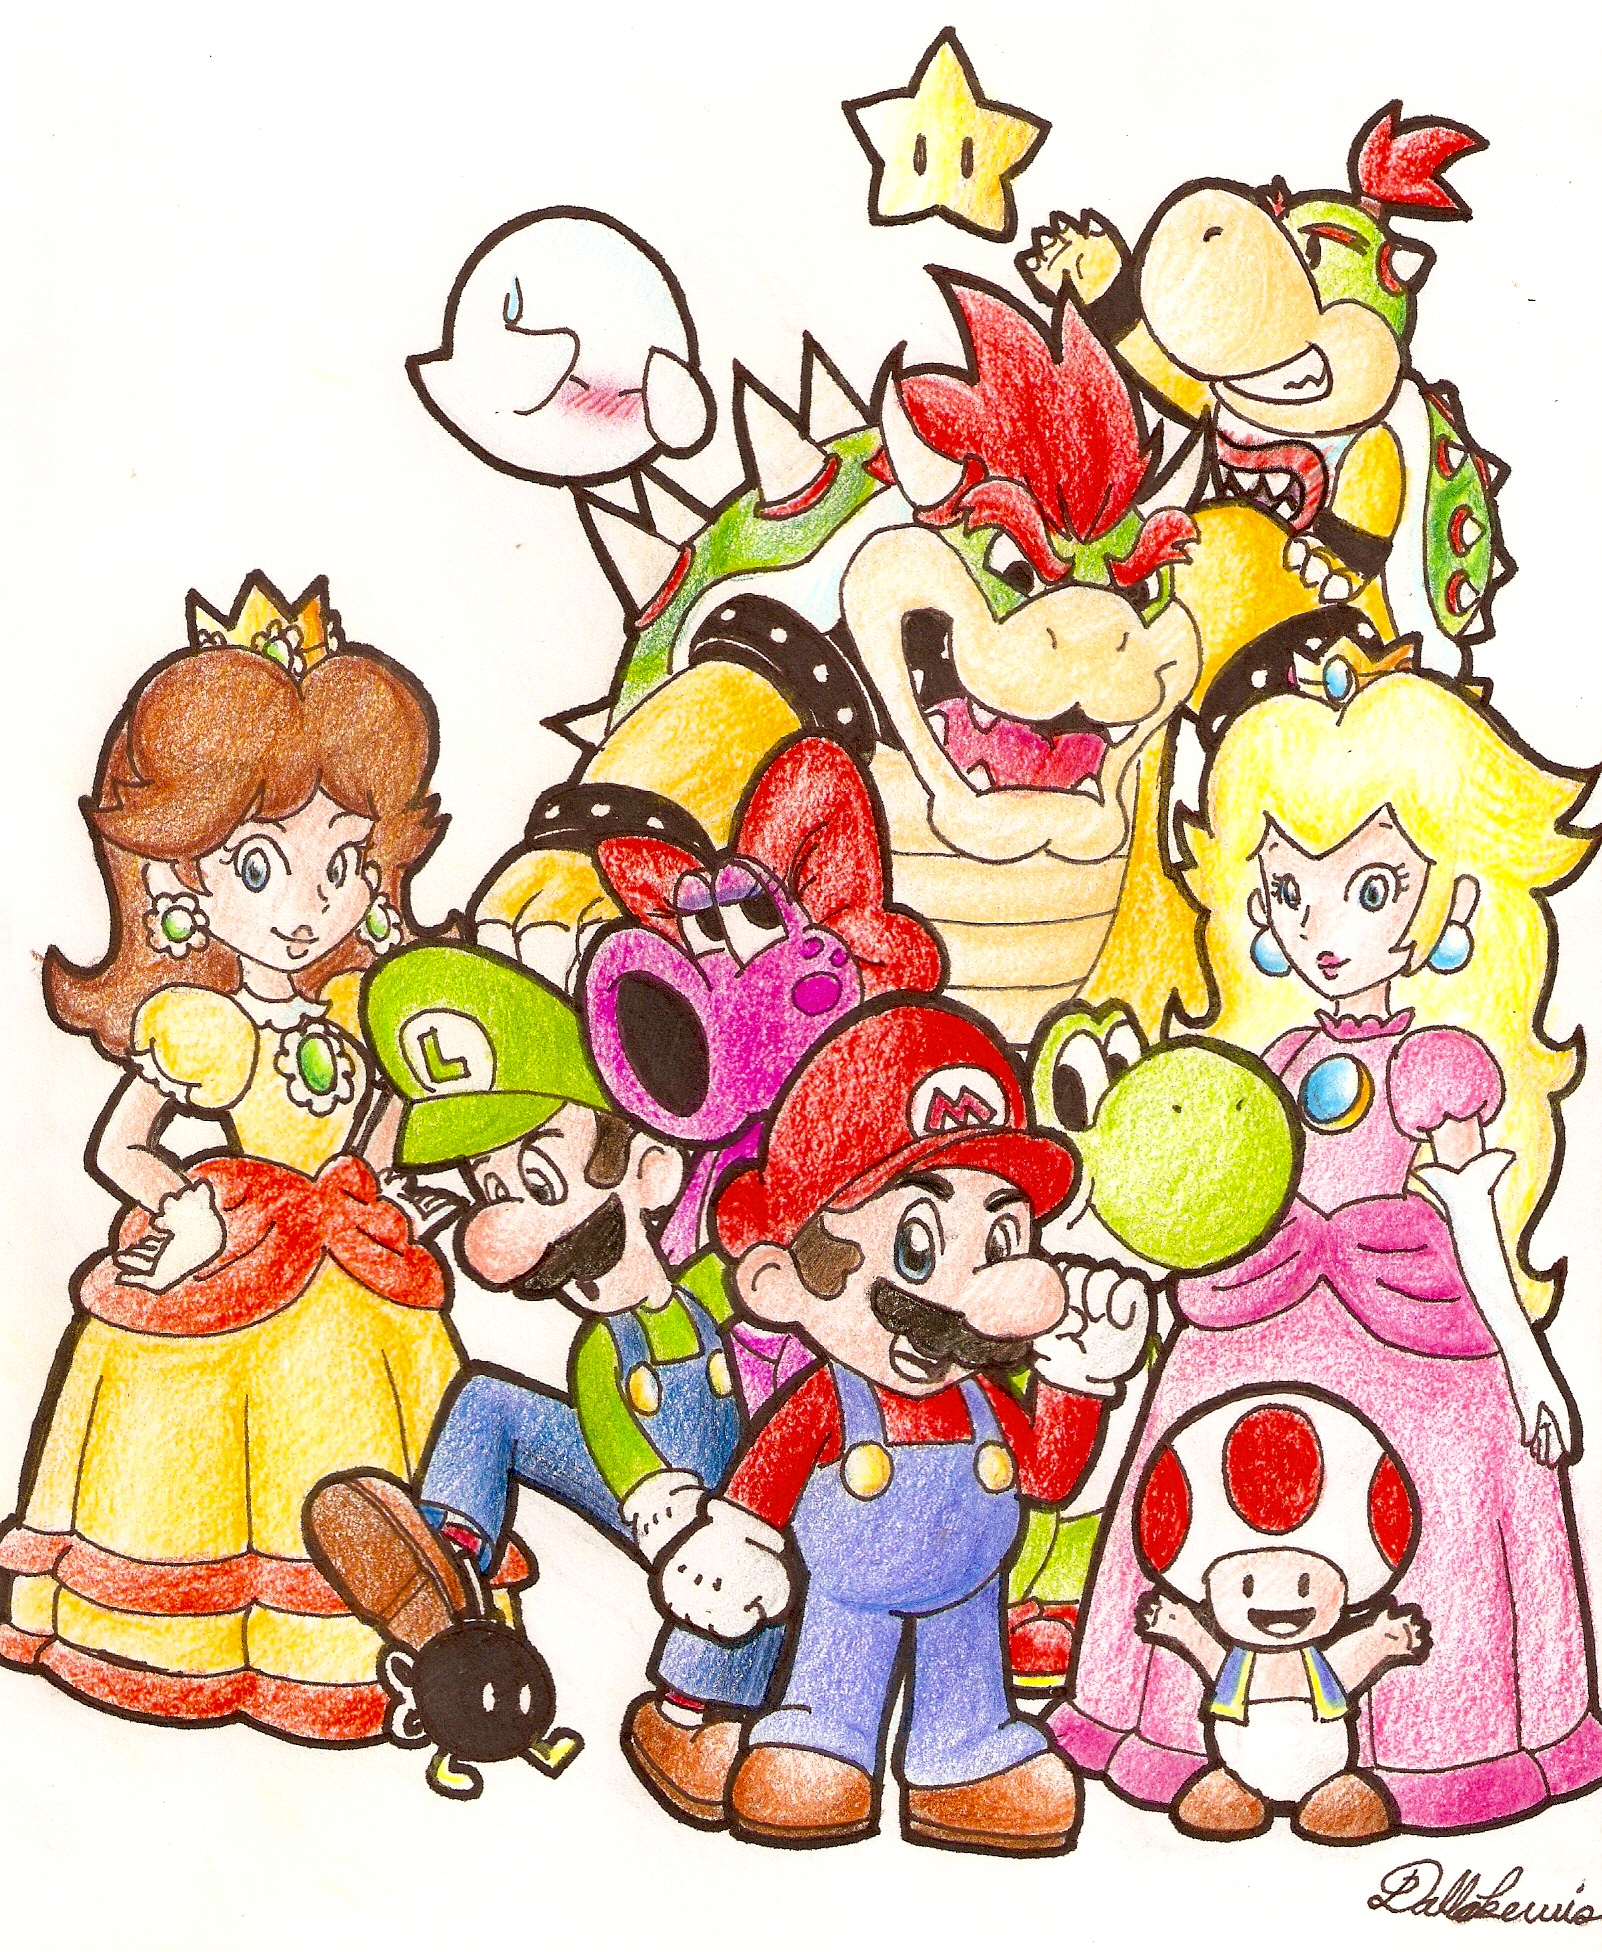 how to draw super mario 3d world characters